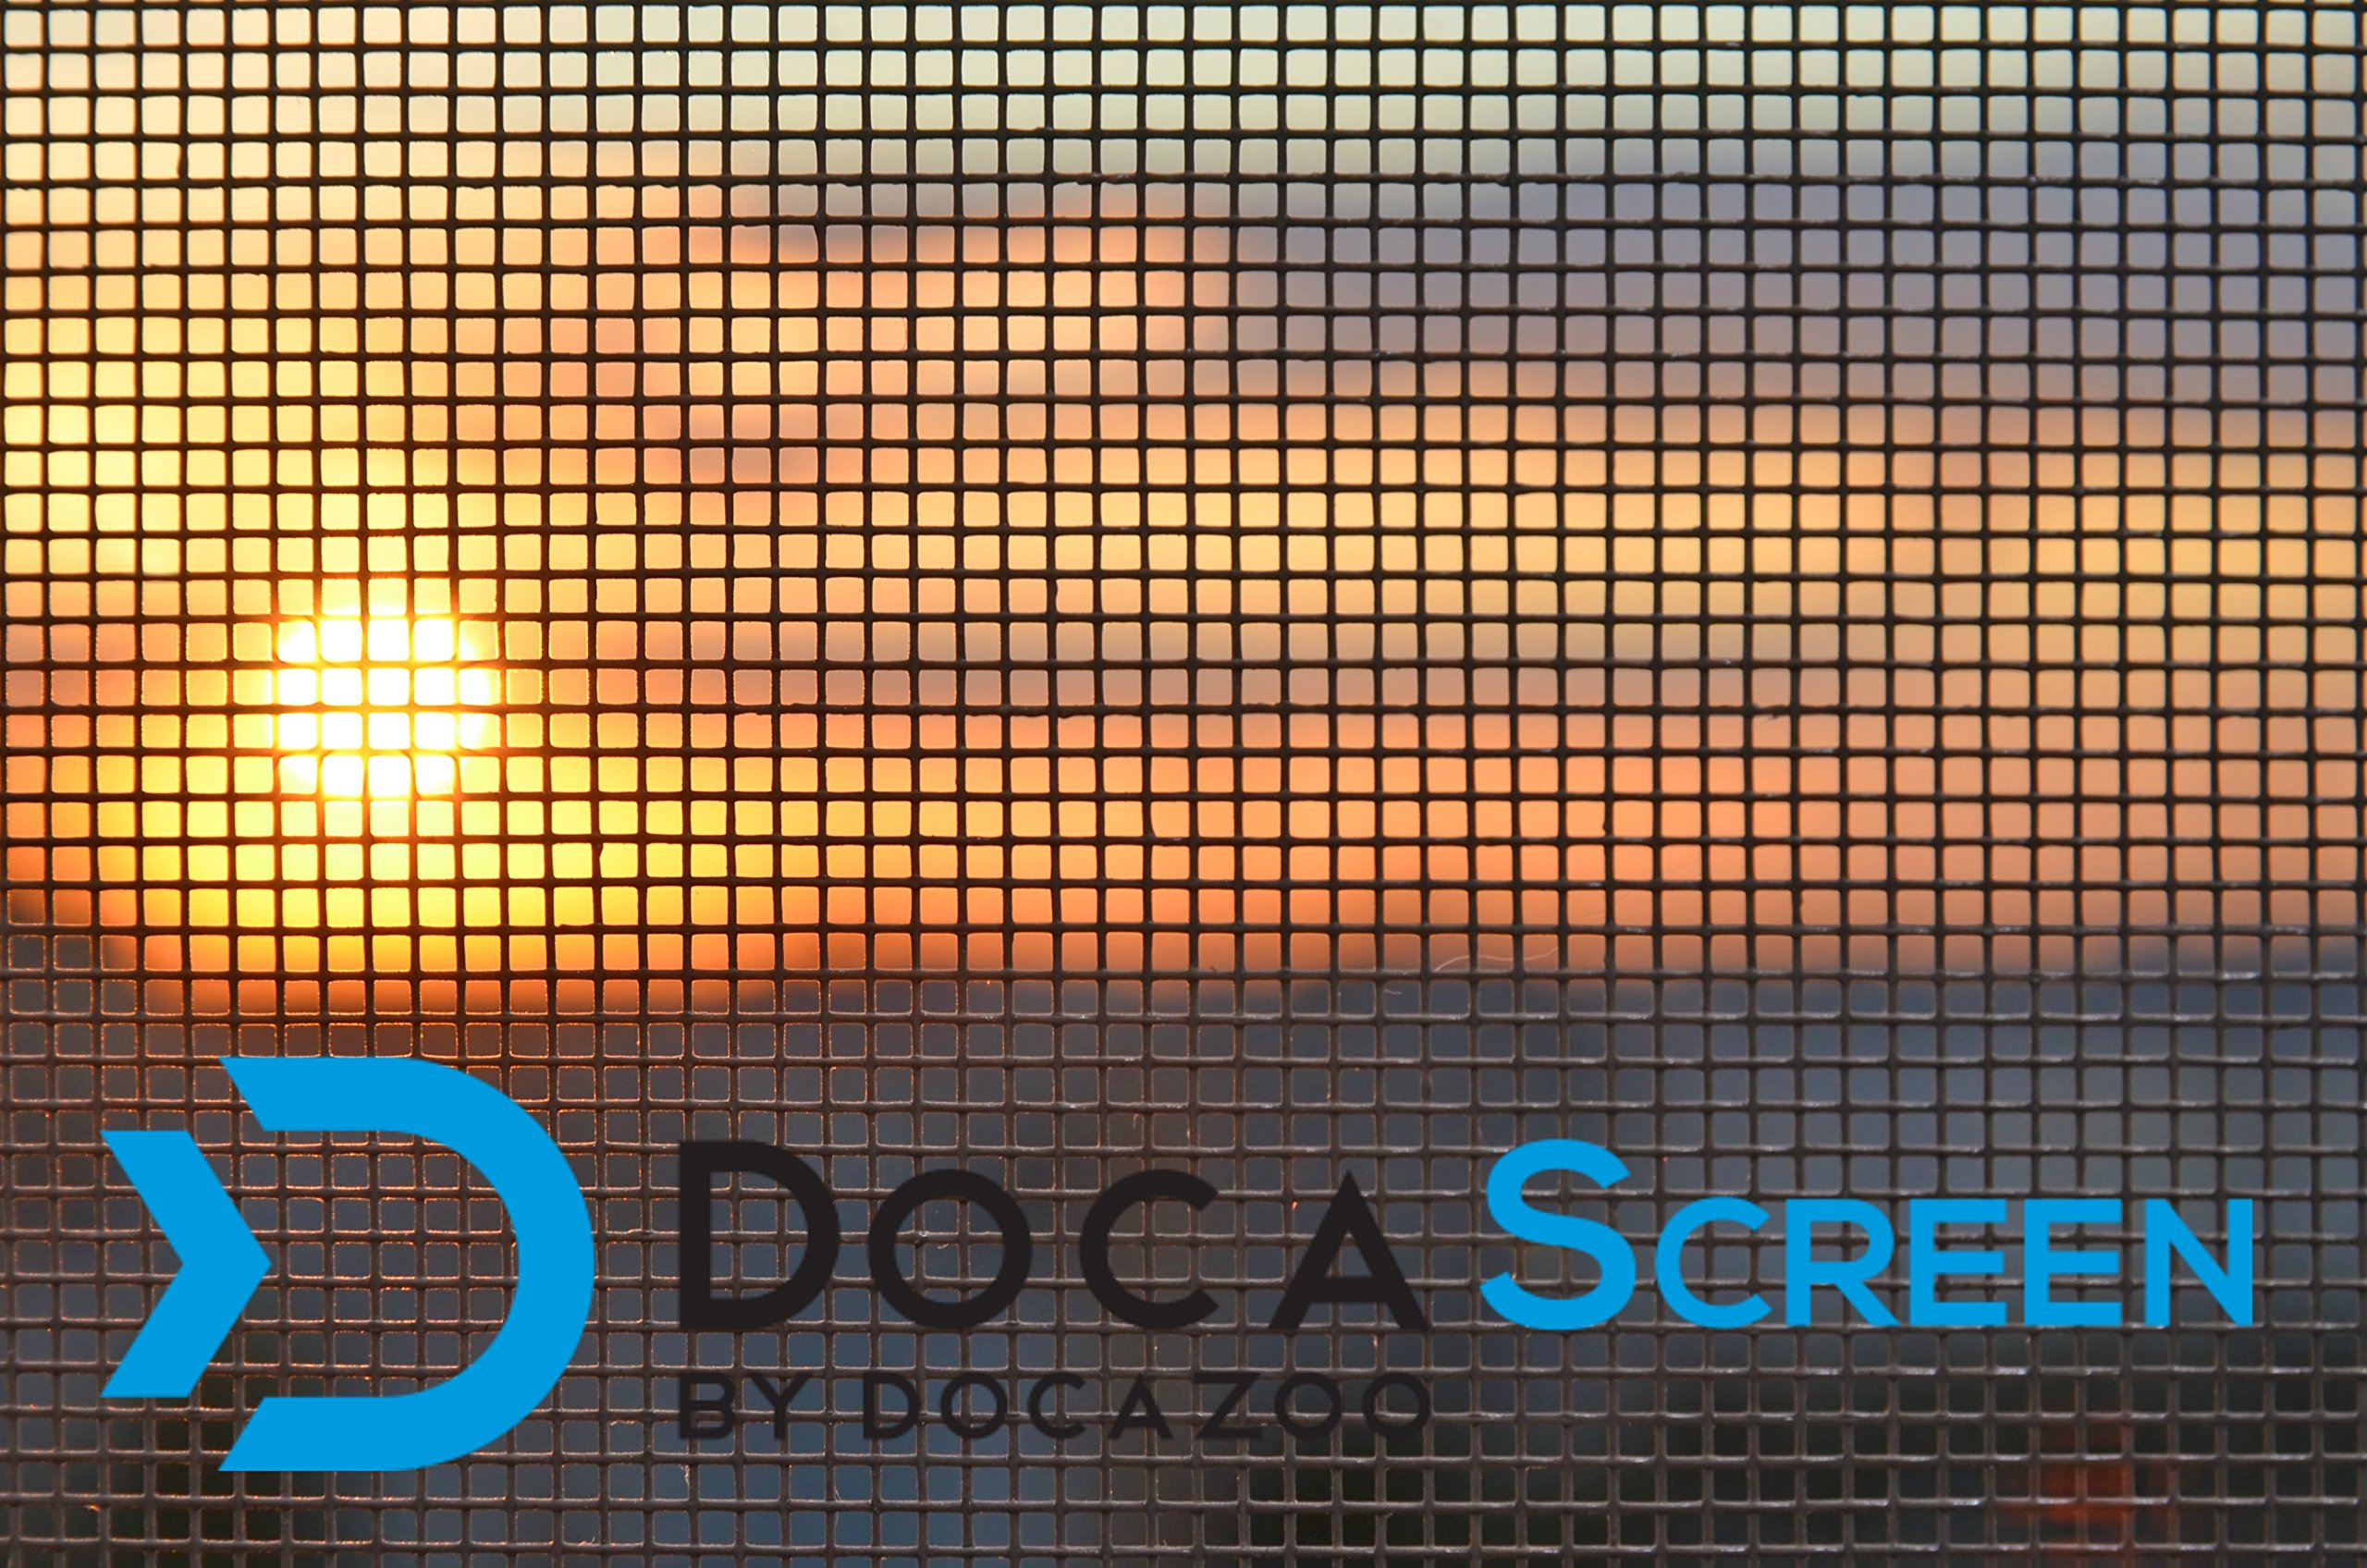 "DocaScreen Standard Window Screen Roll – 48"" x 100' Fiberglass Screen Roll – Window, Door and Patio Screen – Insect Screen // Fiberglass Screening // Screen Replacement // Window Screens"